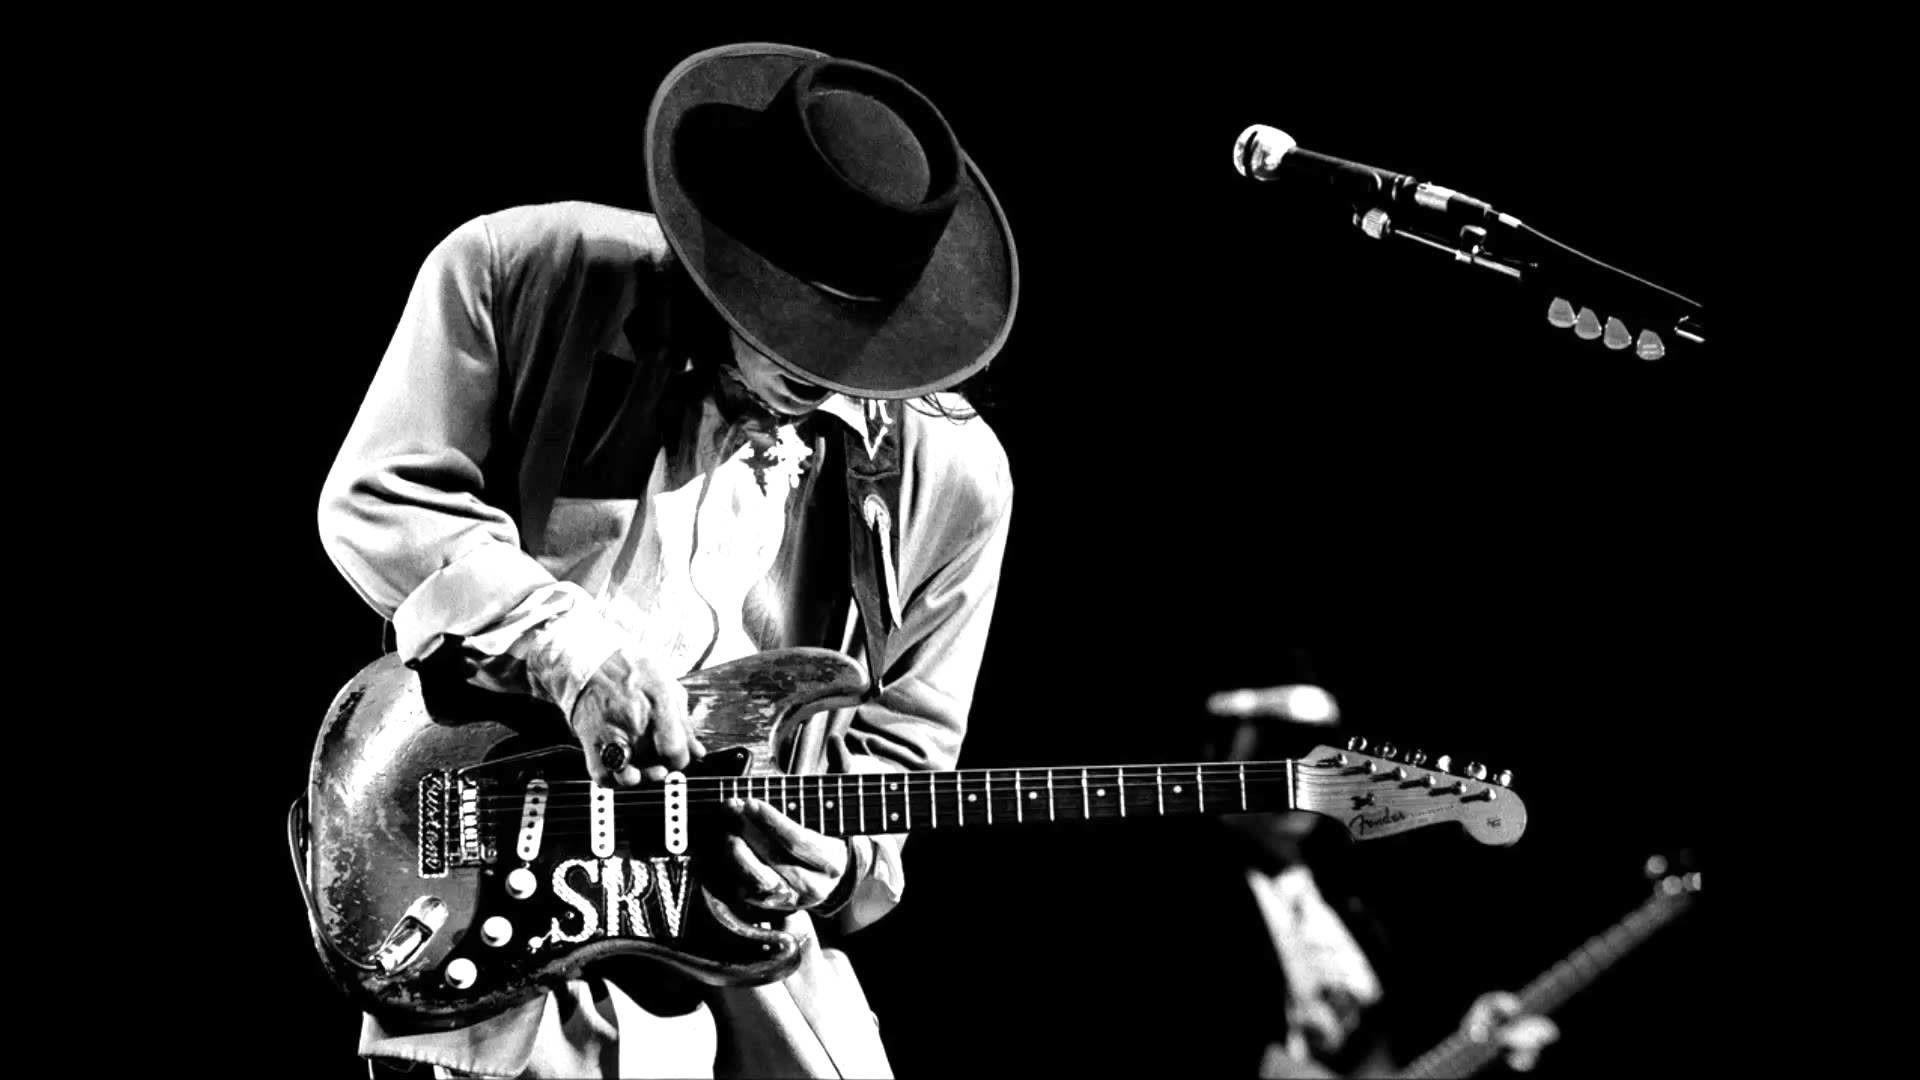 Stevie Ray Vaughan Wallpaper Hd 79 Images